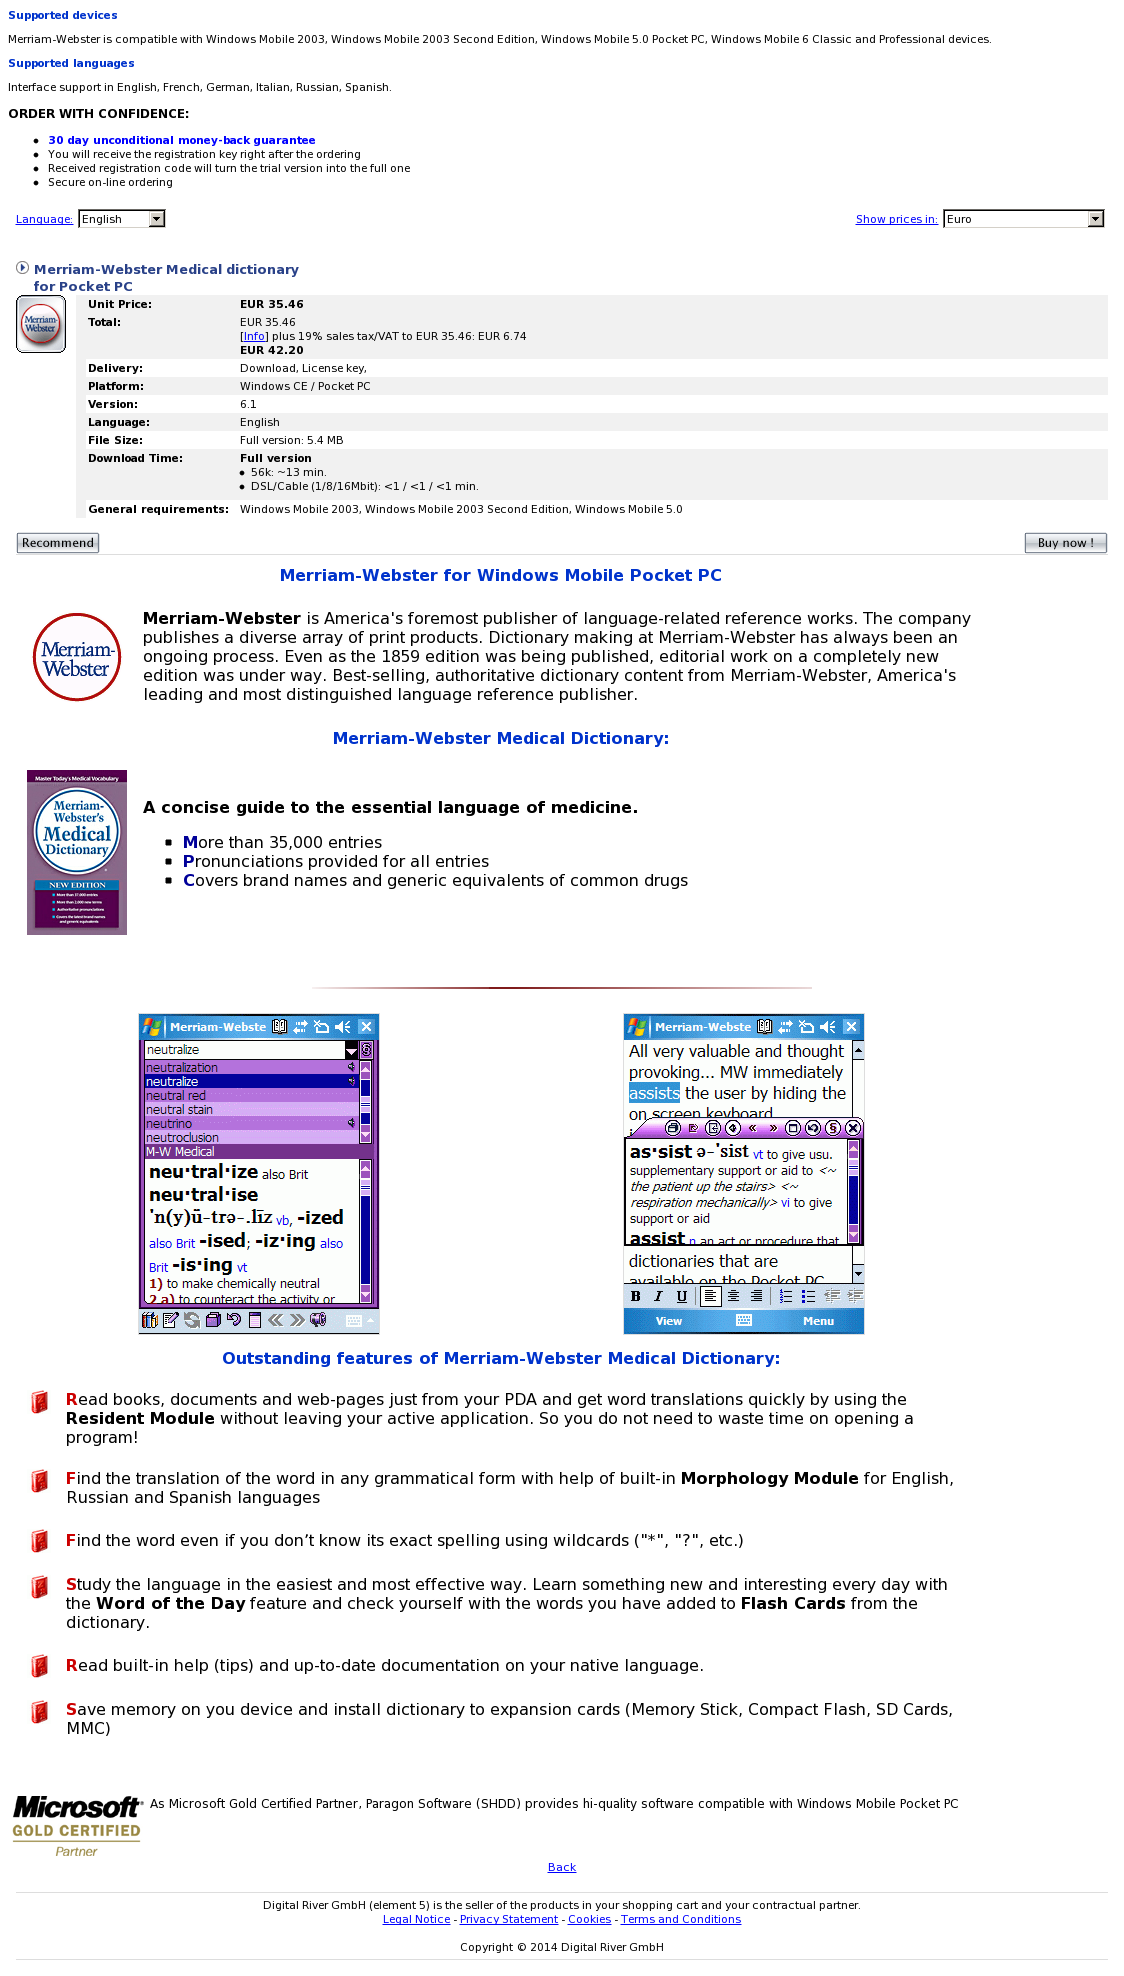 Merriam-Webster Medical dictionary for Pocket PC